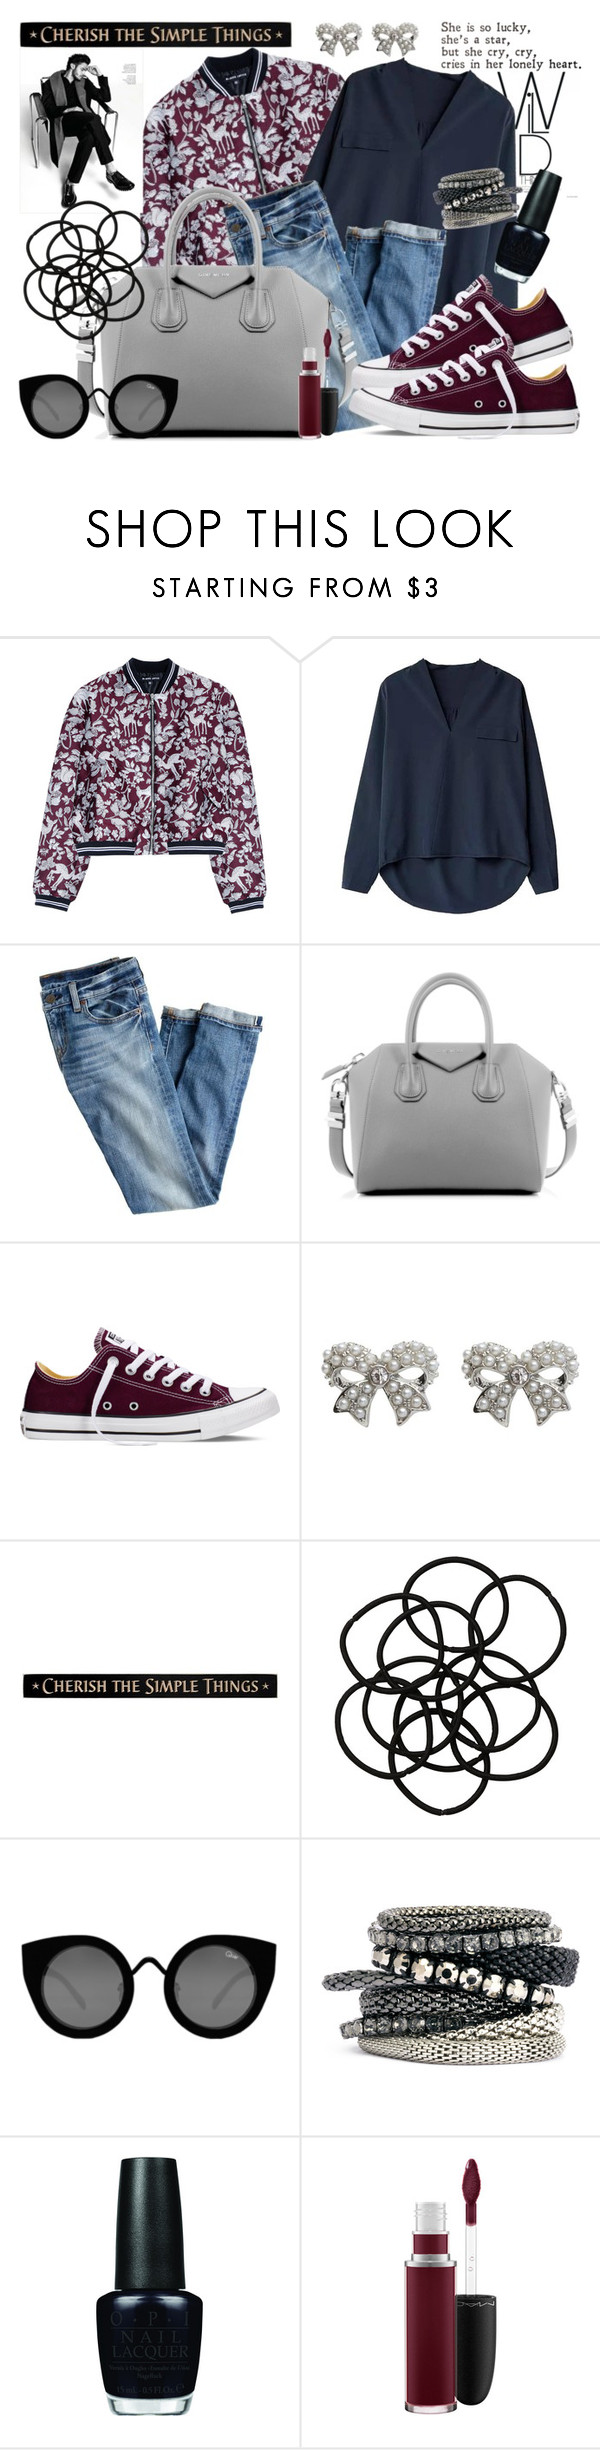 """""""COMFY DAY"""" by ania ❤ liked on Polyvore featuring moda, Markus Lupfer, J.Crew, Givenchy, Converse, M&Co, DutchCrafters, Monki, Quay e H&M"""